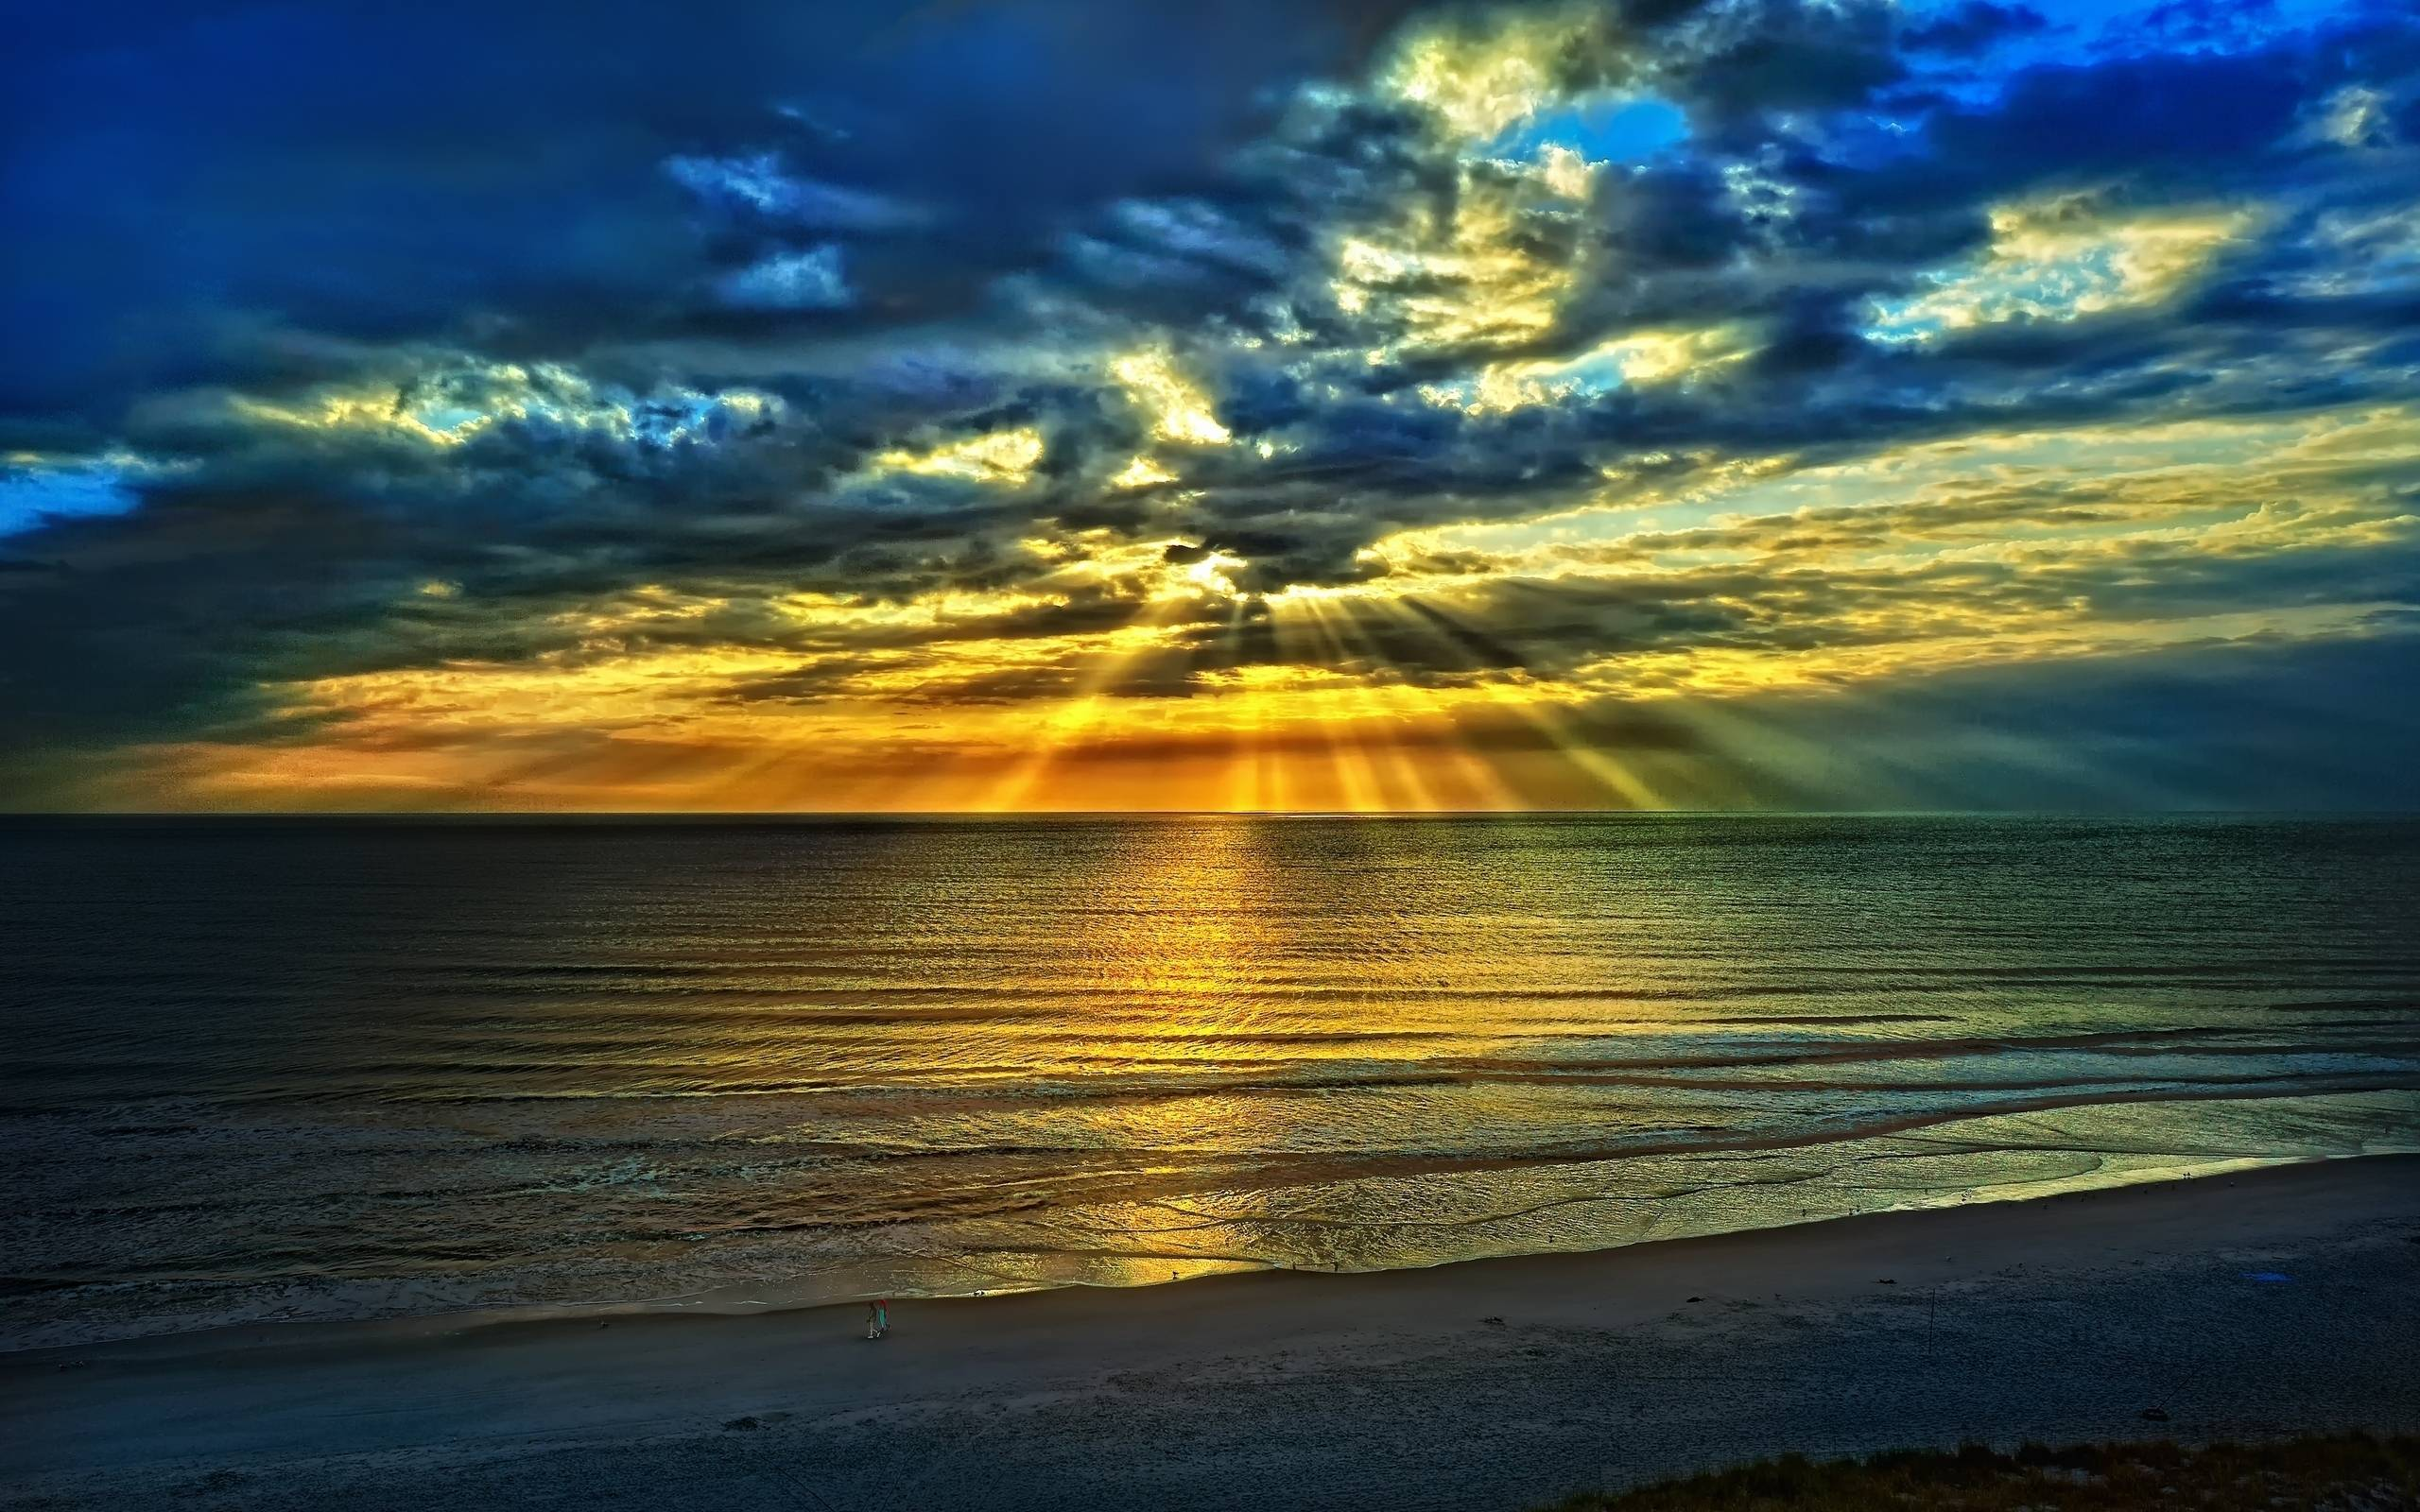 Free Sunset Wallpaper Backgrounds Widescreen 2 HD Wallpapers | Eakai.